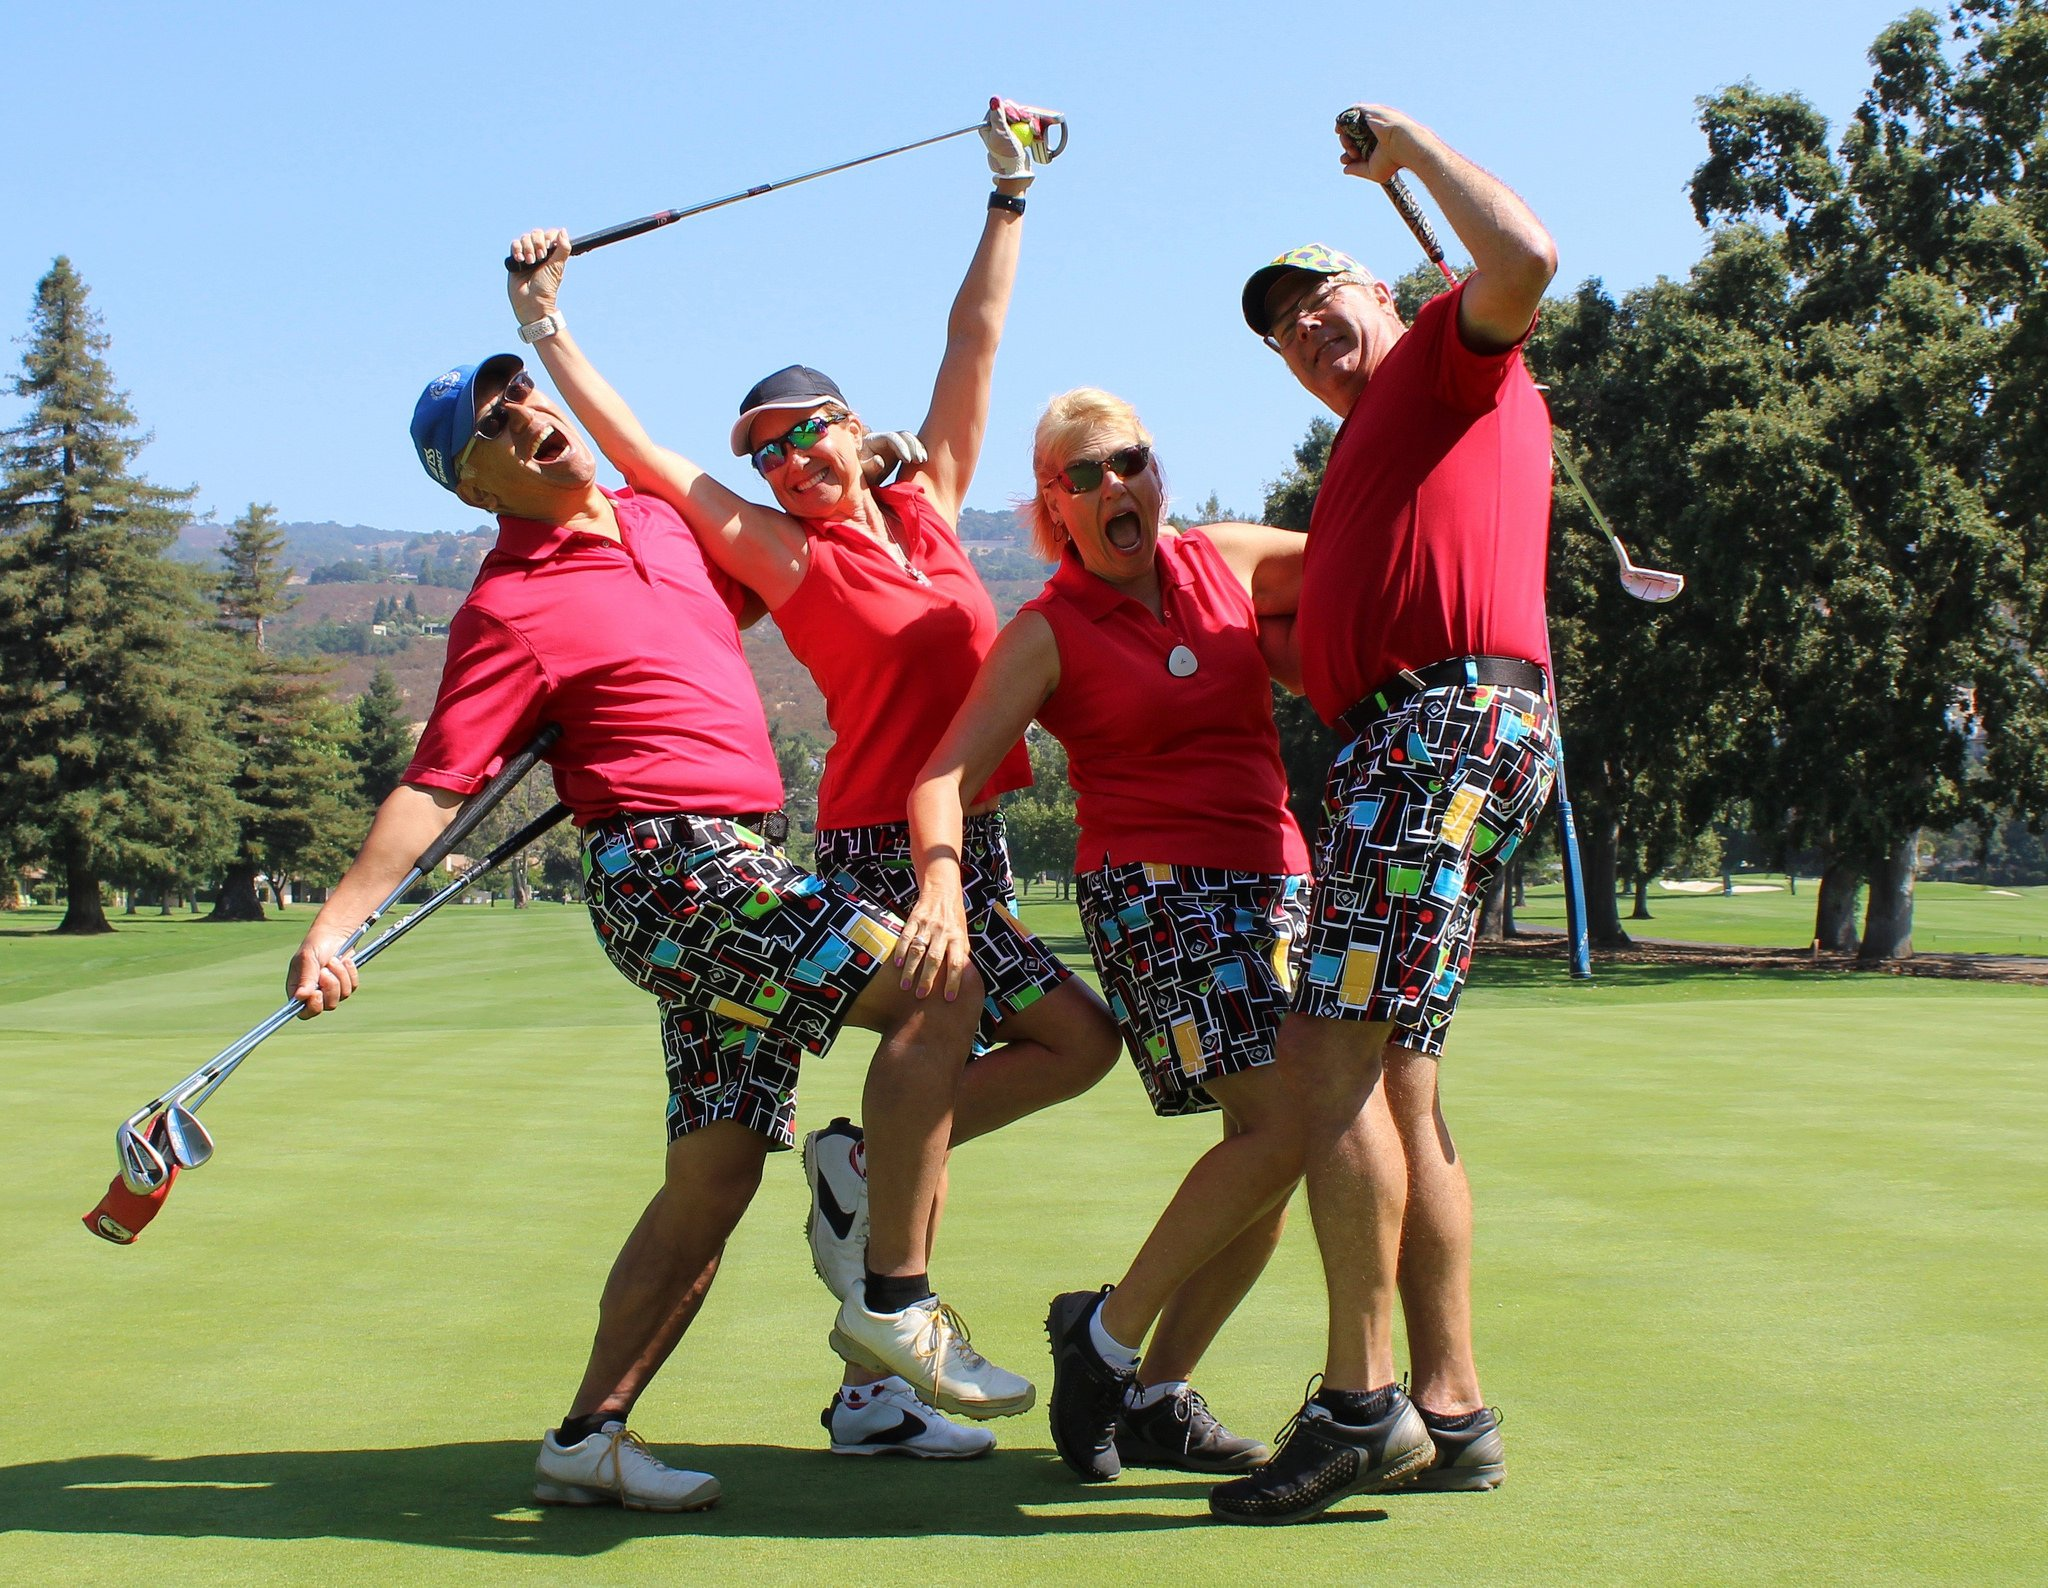 Loudmouth Golf Stars & Stripes StretchTech Women's Skort 08 by Loudmouth Golf (Image #4)